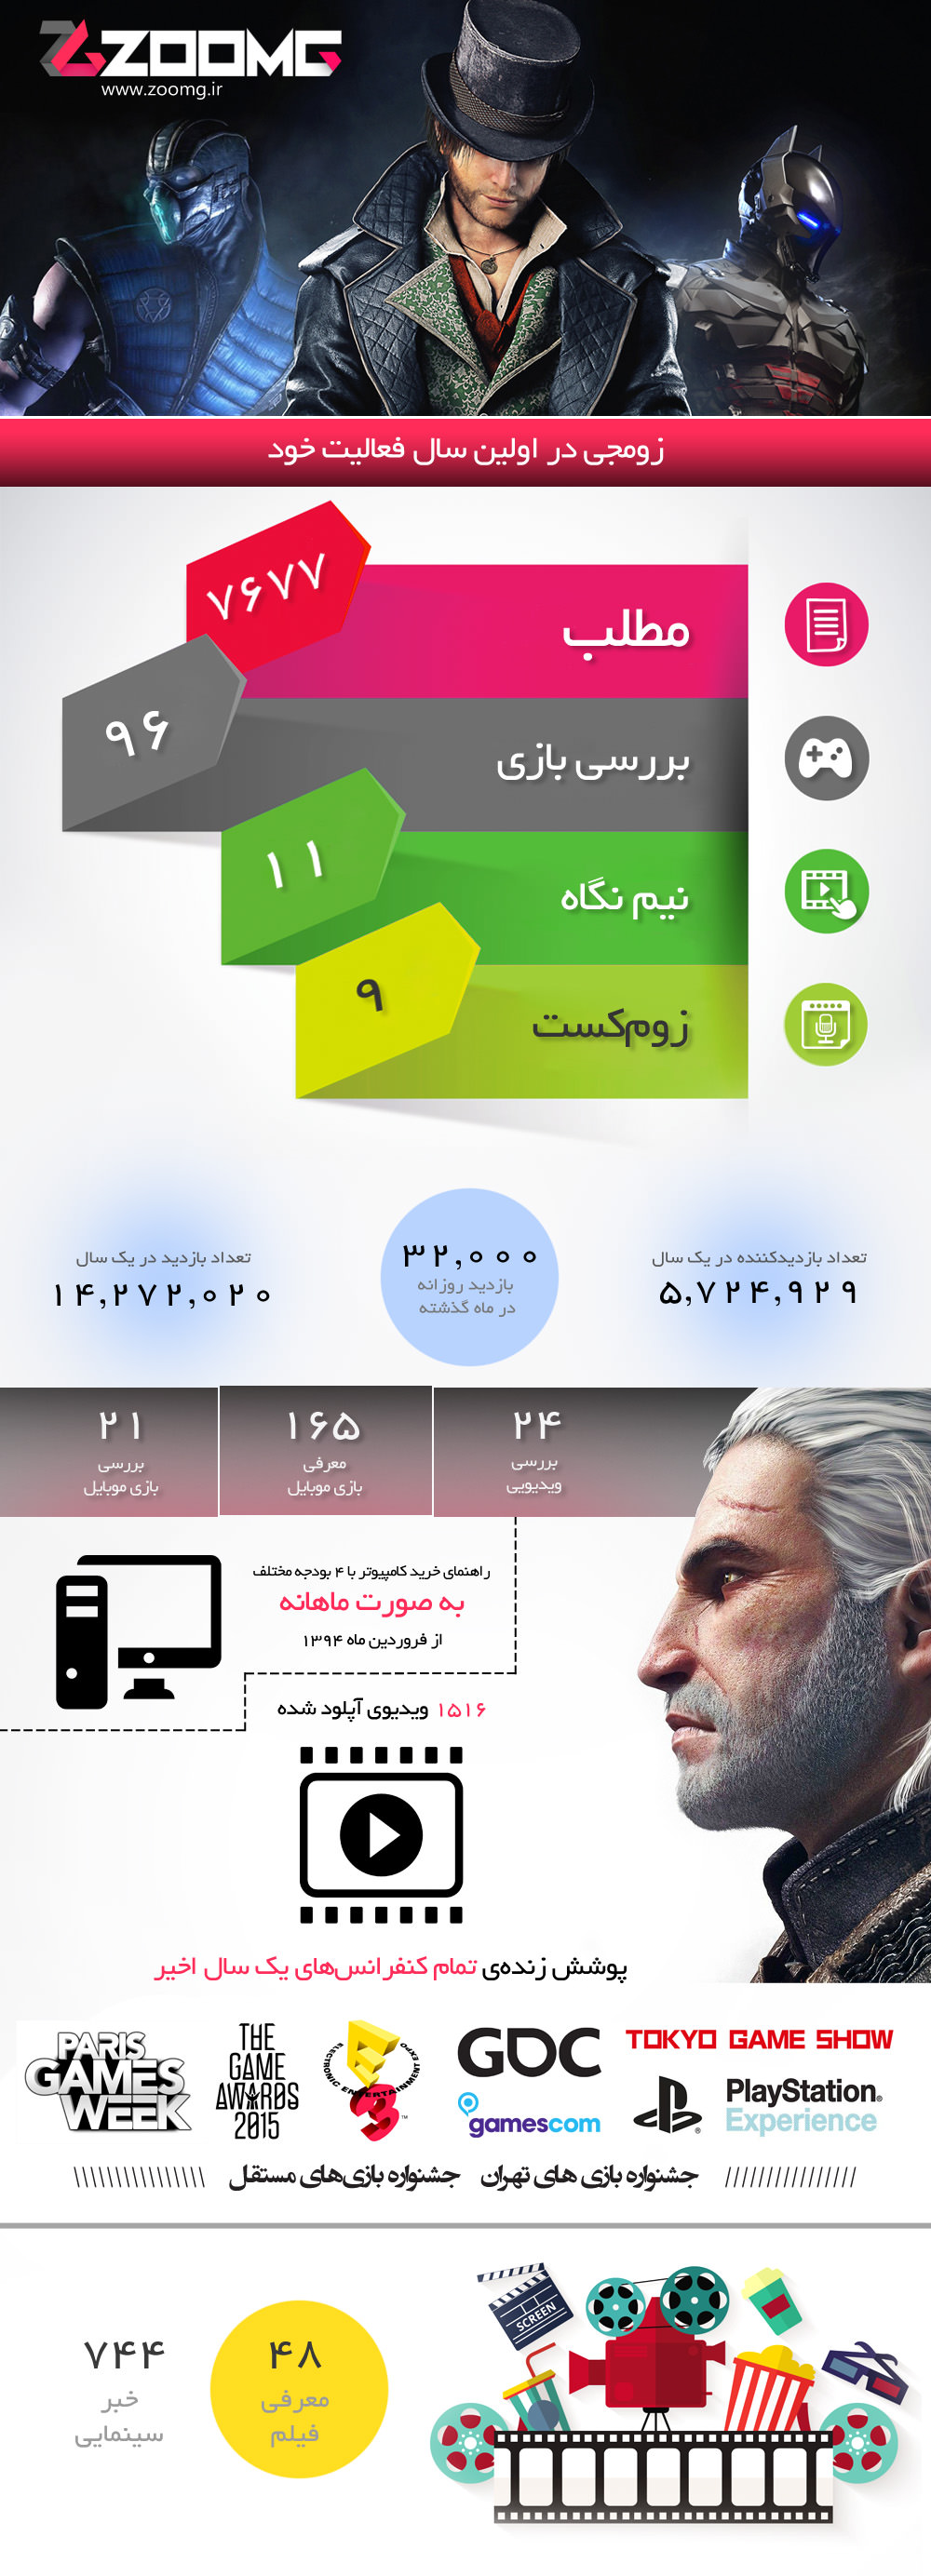 zoomg infography in last year